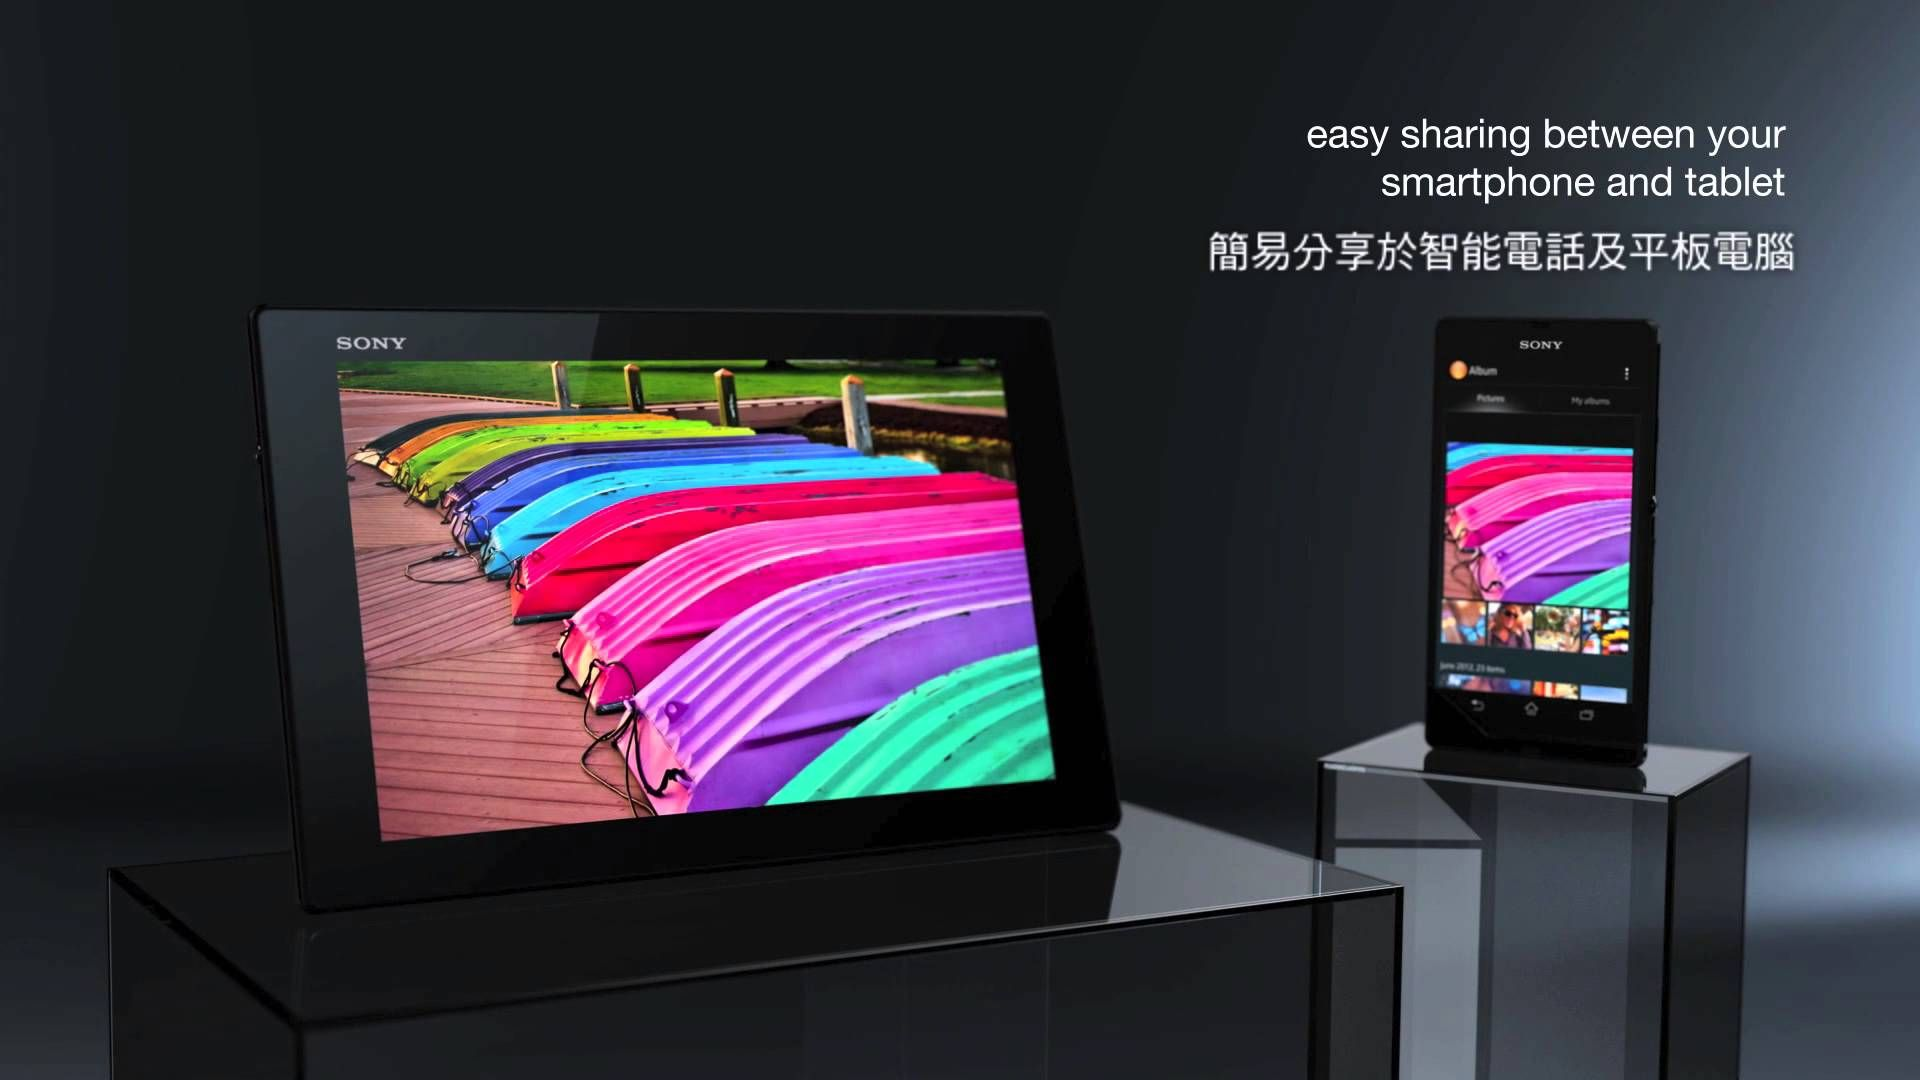 Xperia Tablet Z - 全方位感受Sony 10.1 超高清平板電腦 (With images)